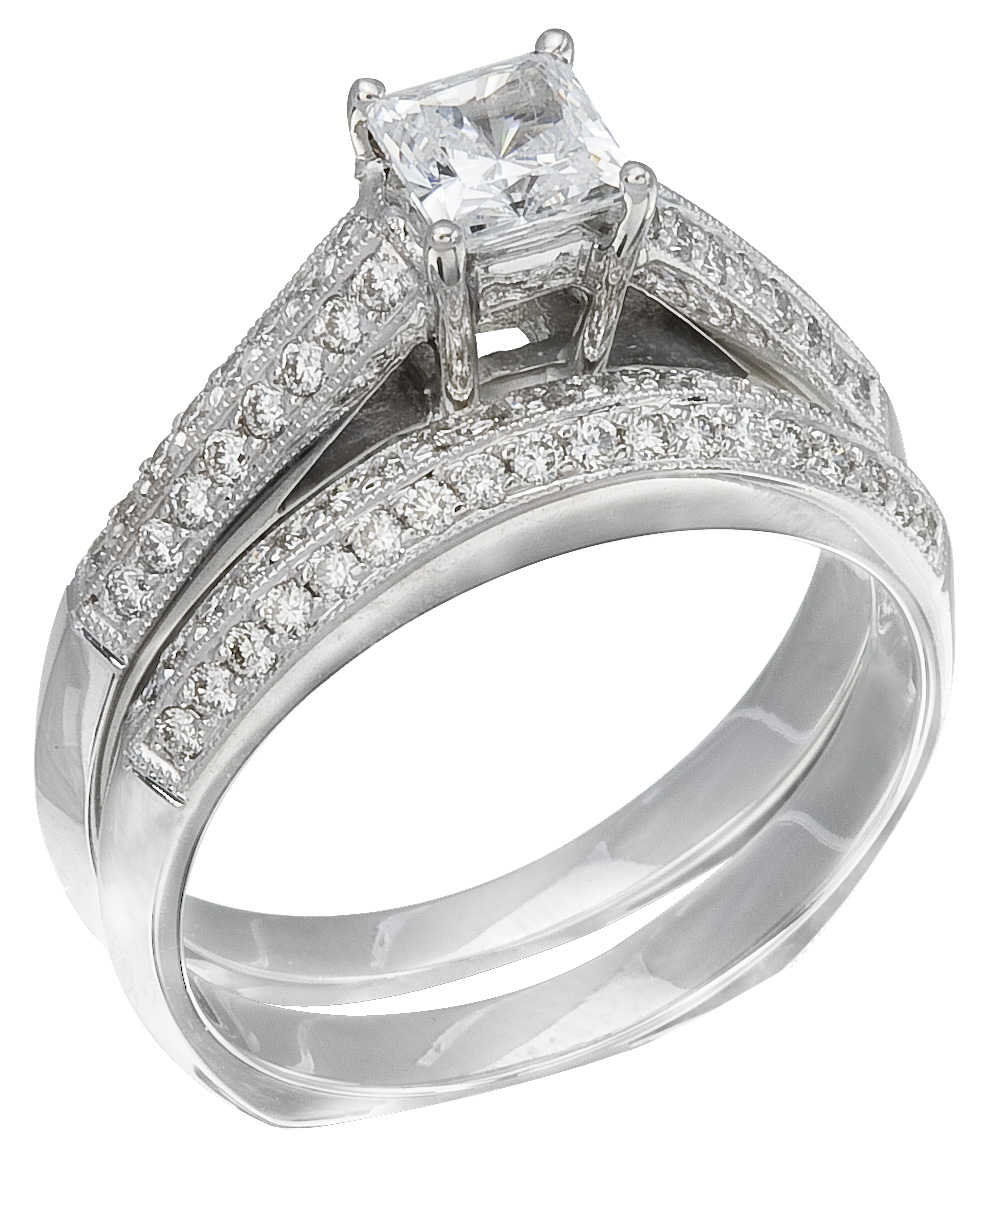 RWG222 Discounted Price White Gold Diamond La s Ring